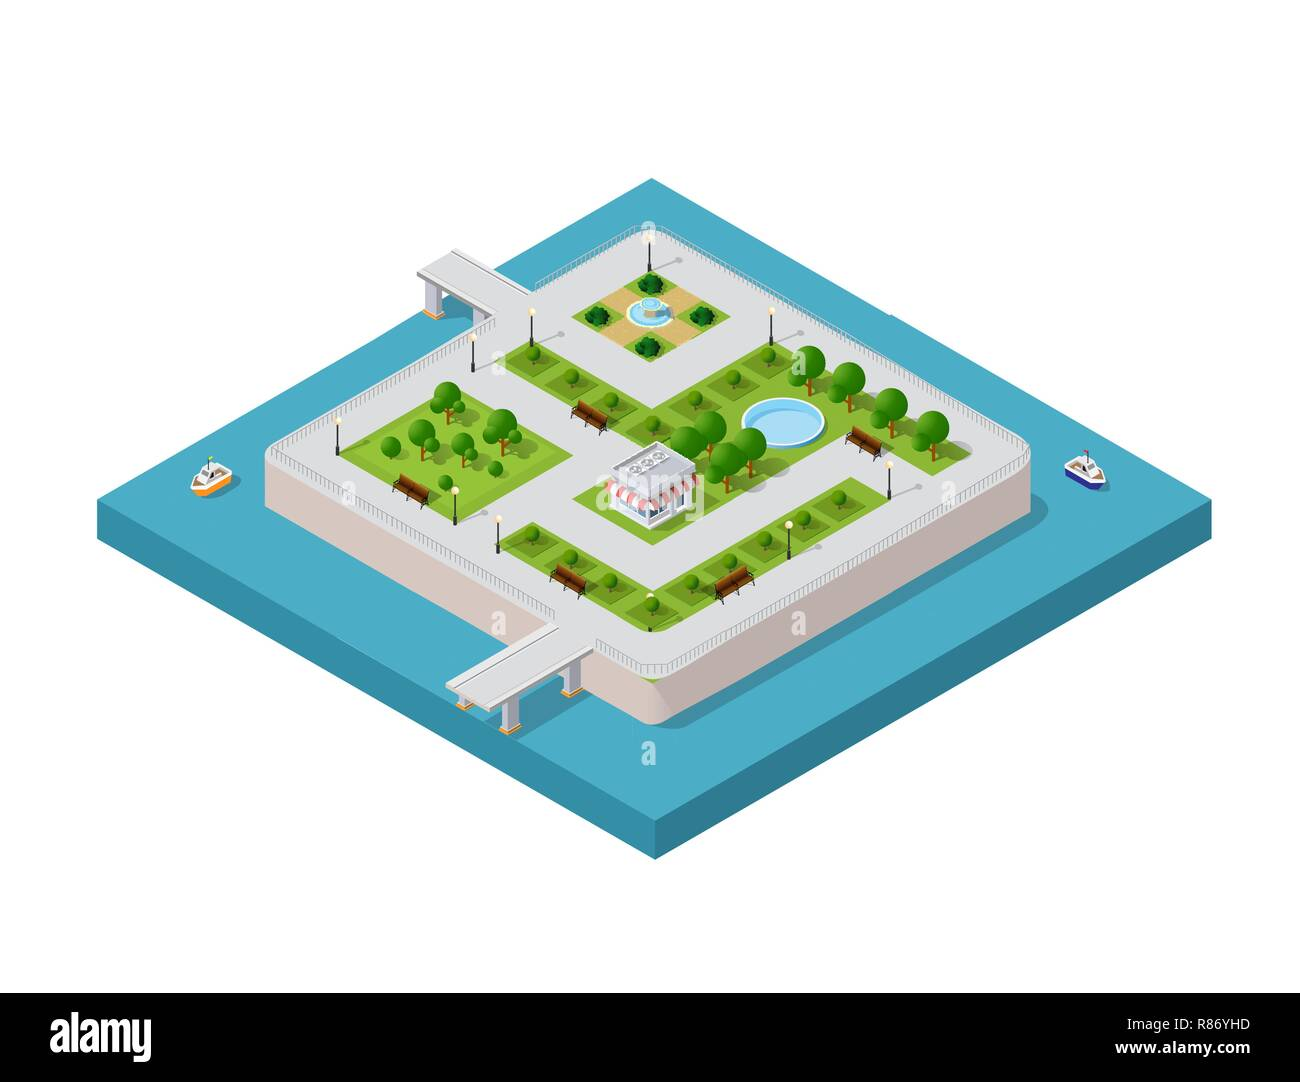 Isometric vector illustration of a modern city with a marina and river embankment. Water park on the island - Stock Image